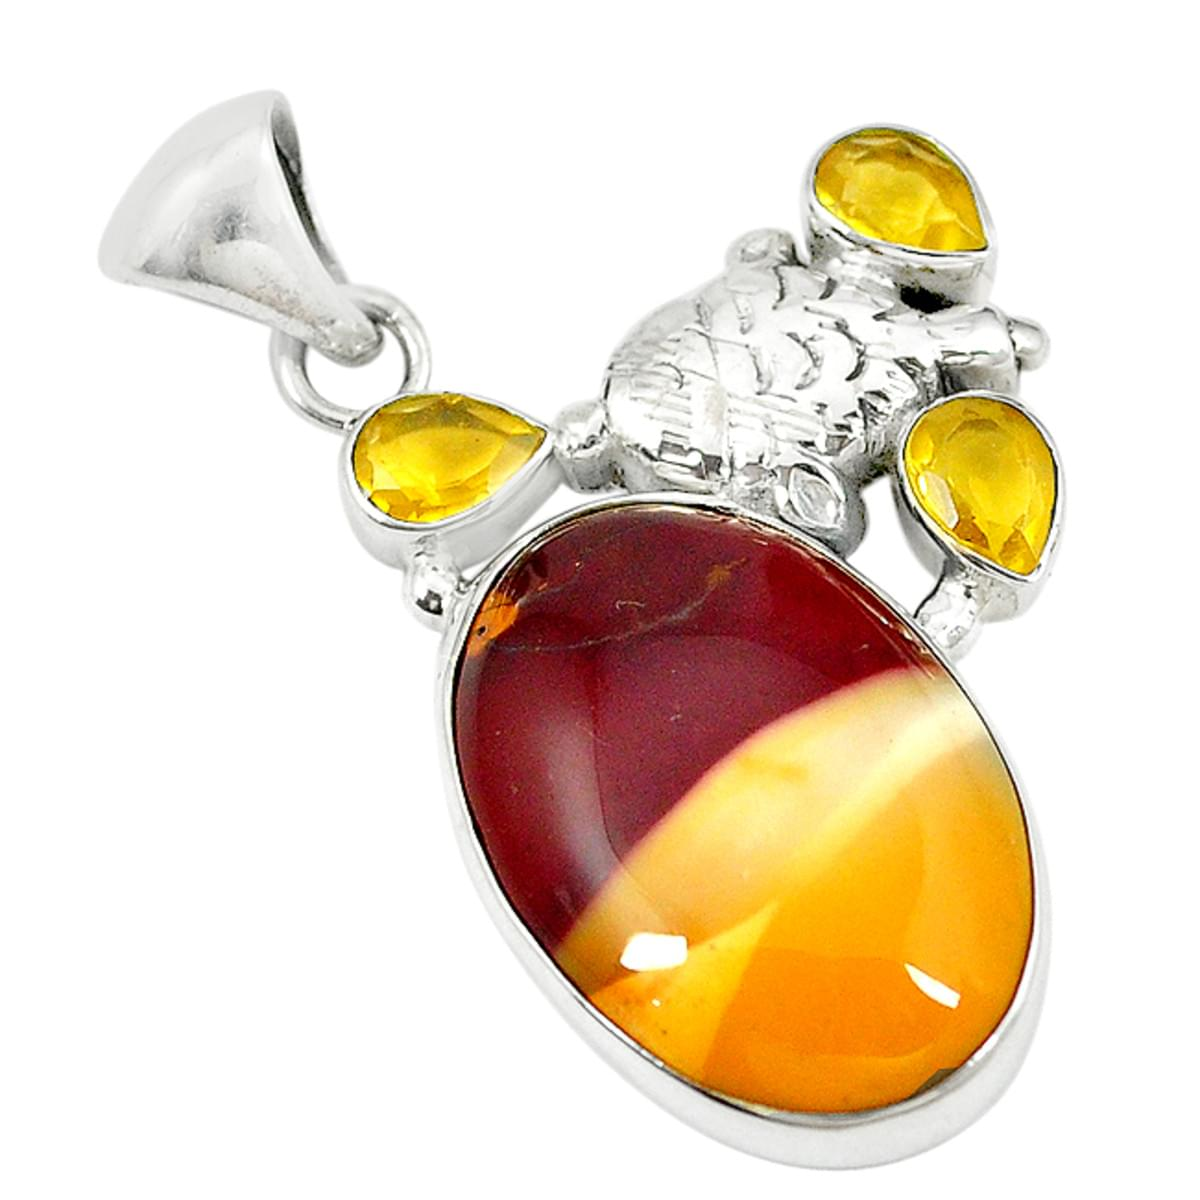 Solid 925 Sterling Silver Pendant Natural Mookaite Gemstone Handmade Jewelry